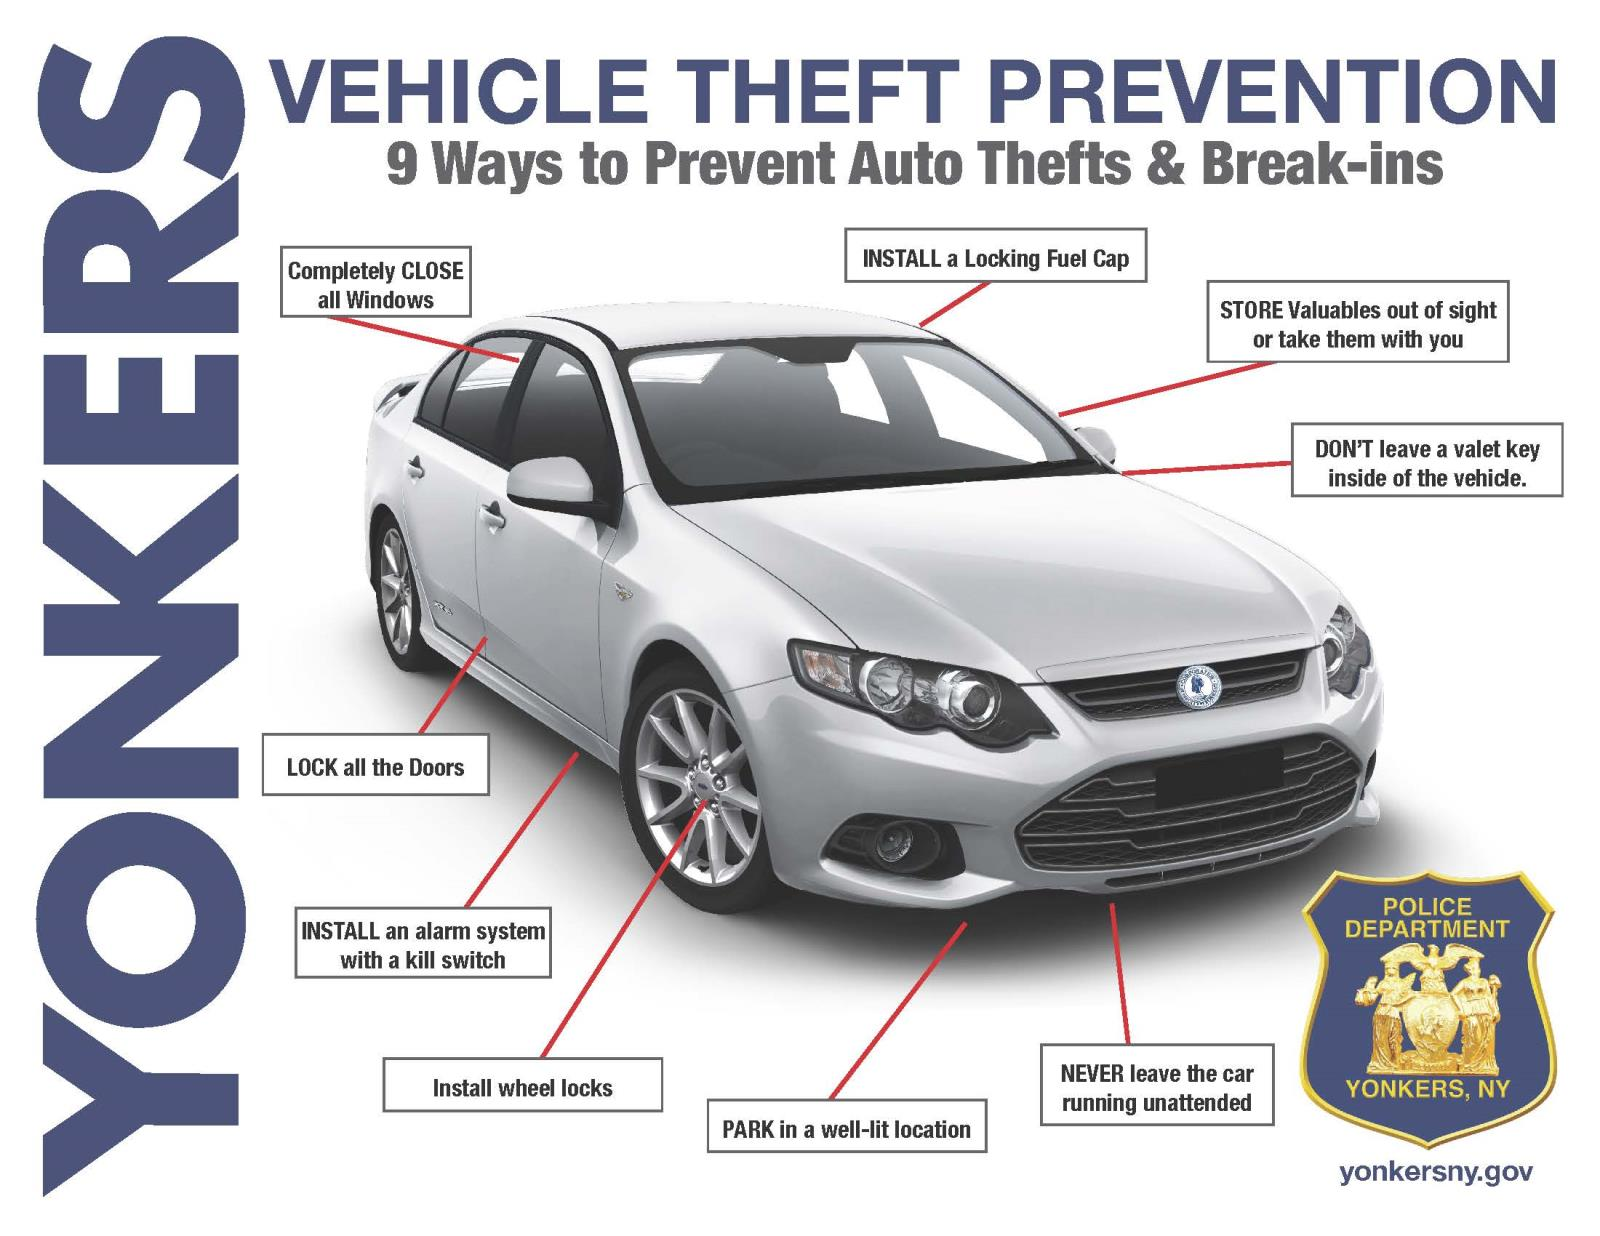 YPD-Vehicle Theft Prevention  (3)